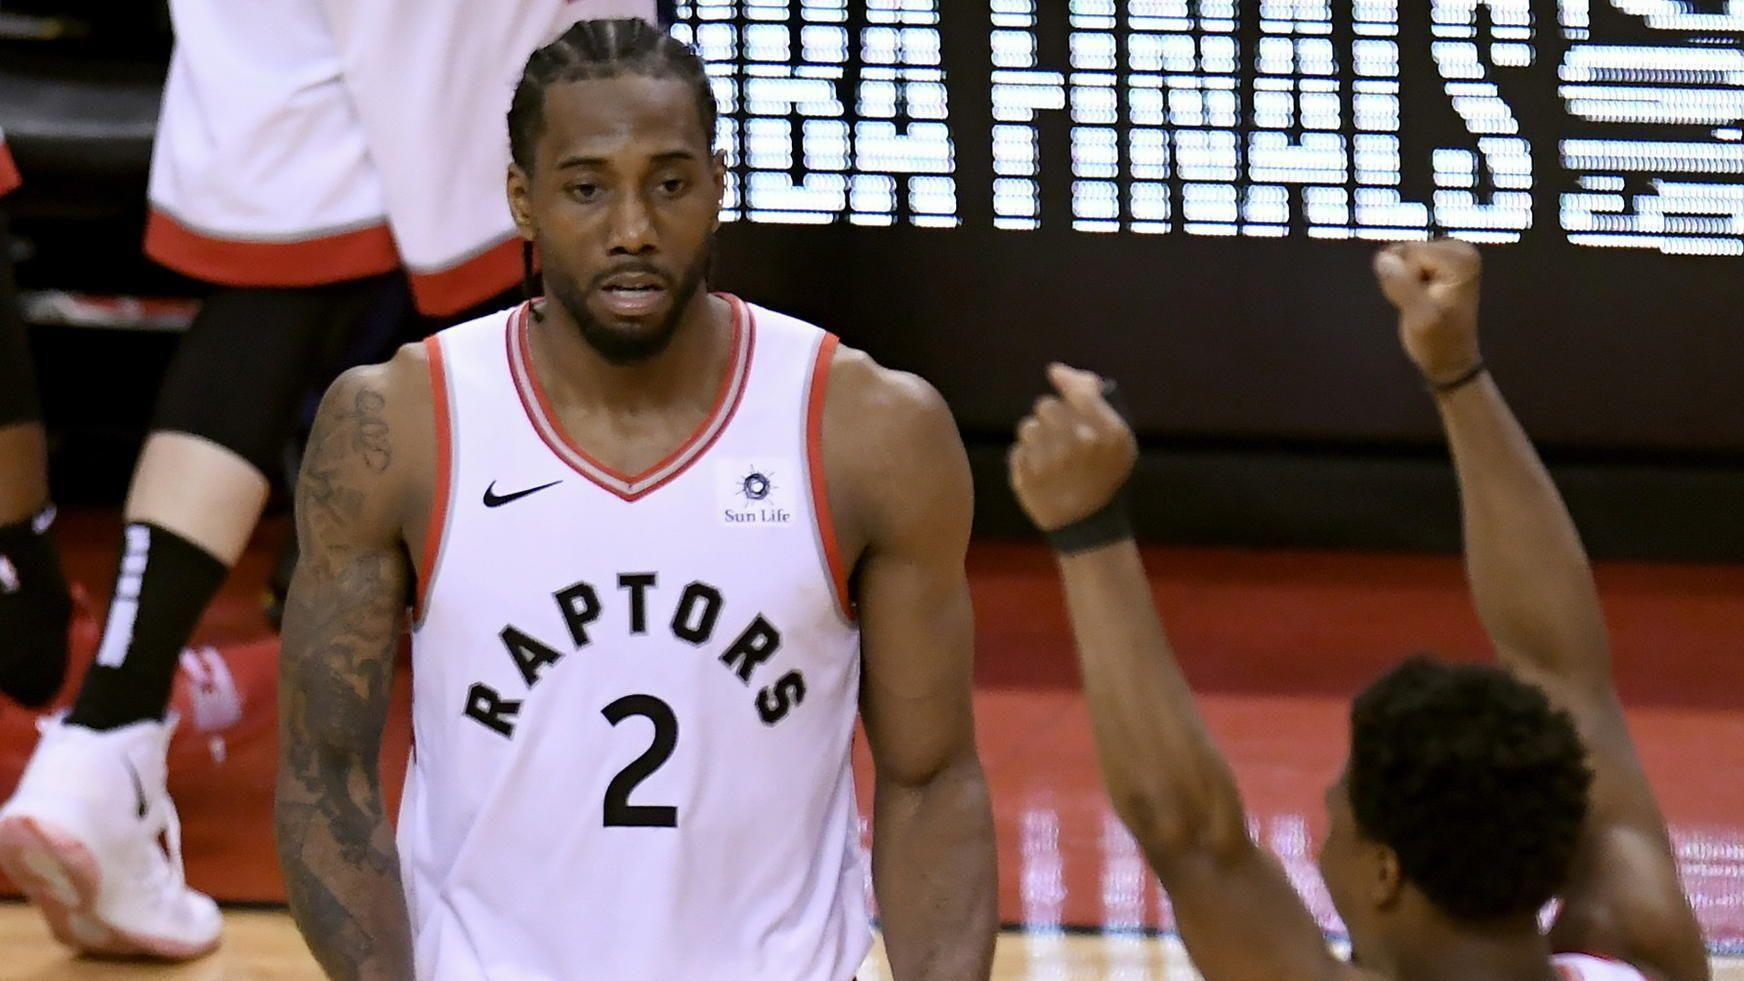 Raptors eliminate Bucks and advance to their 1st NBA Finals, where they'll meet the defending champion Warriors